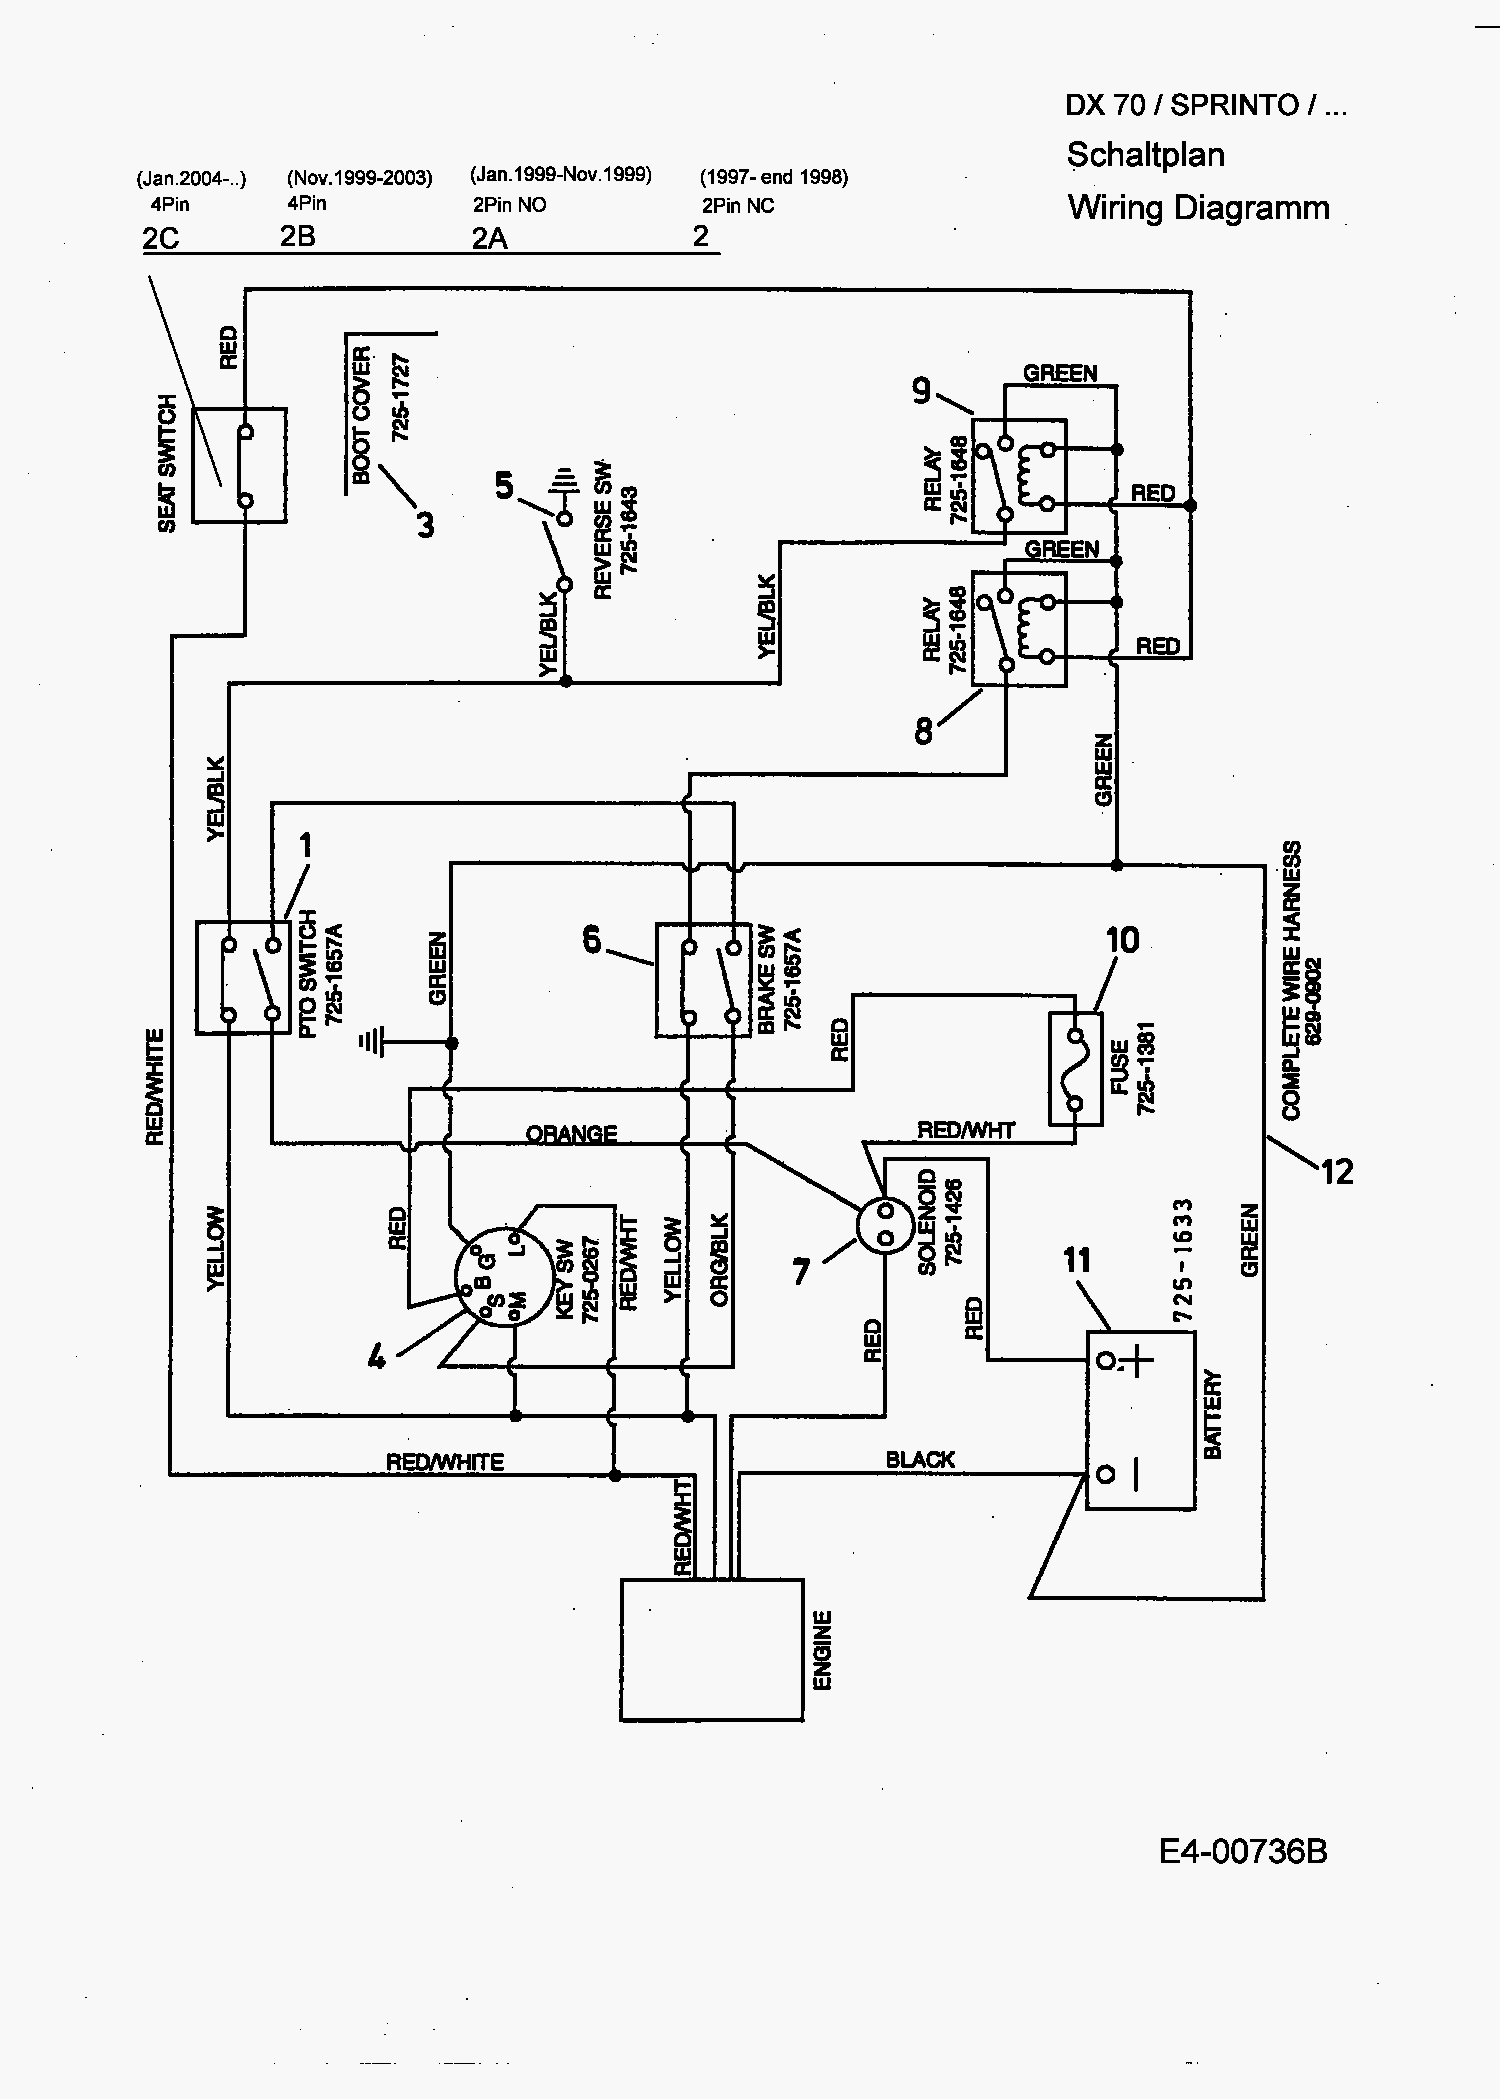 Wiring Diagram For Scott Lawn Mower